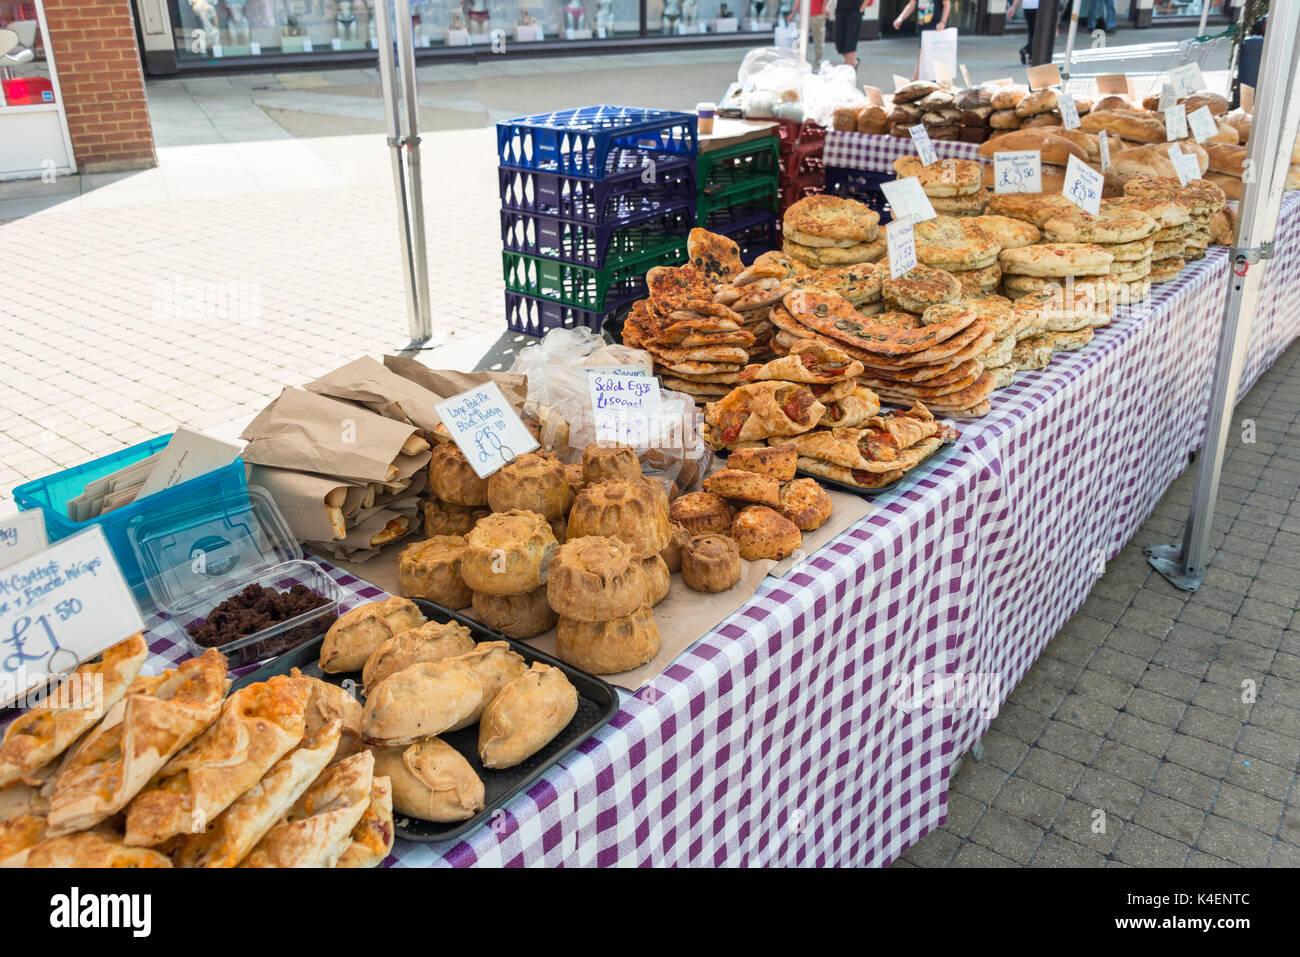 Pastries on food stall in King Edward Court, Windsor, Berkshire, England, United Kingdom - Stock Image